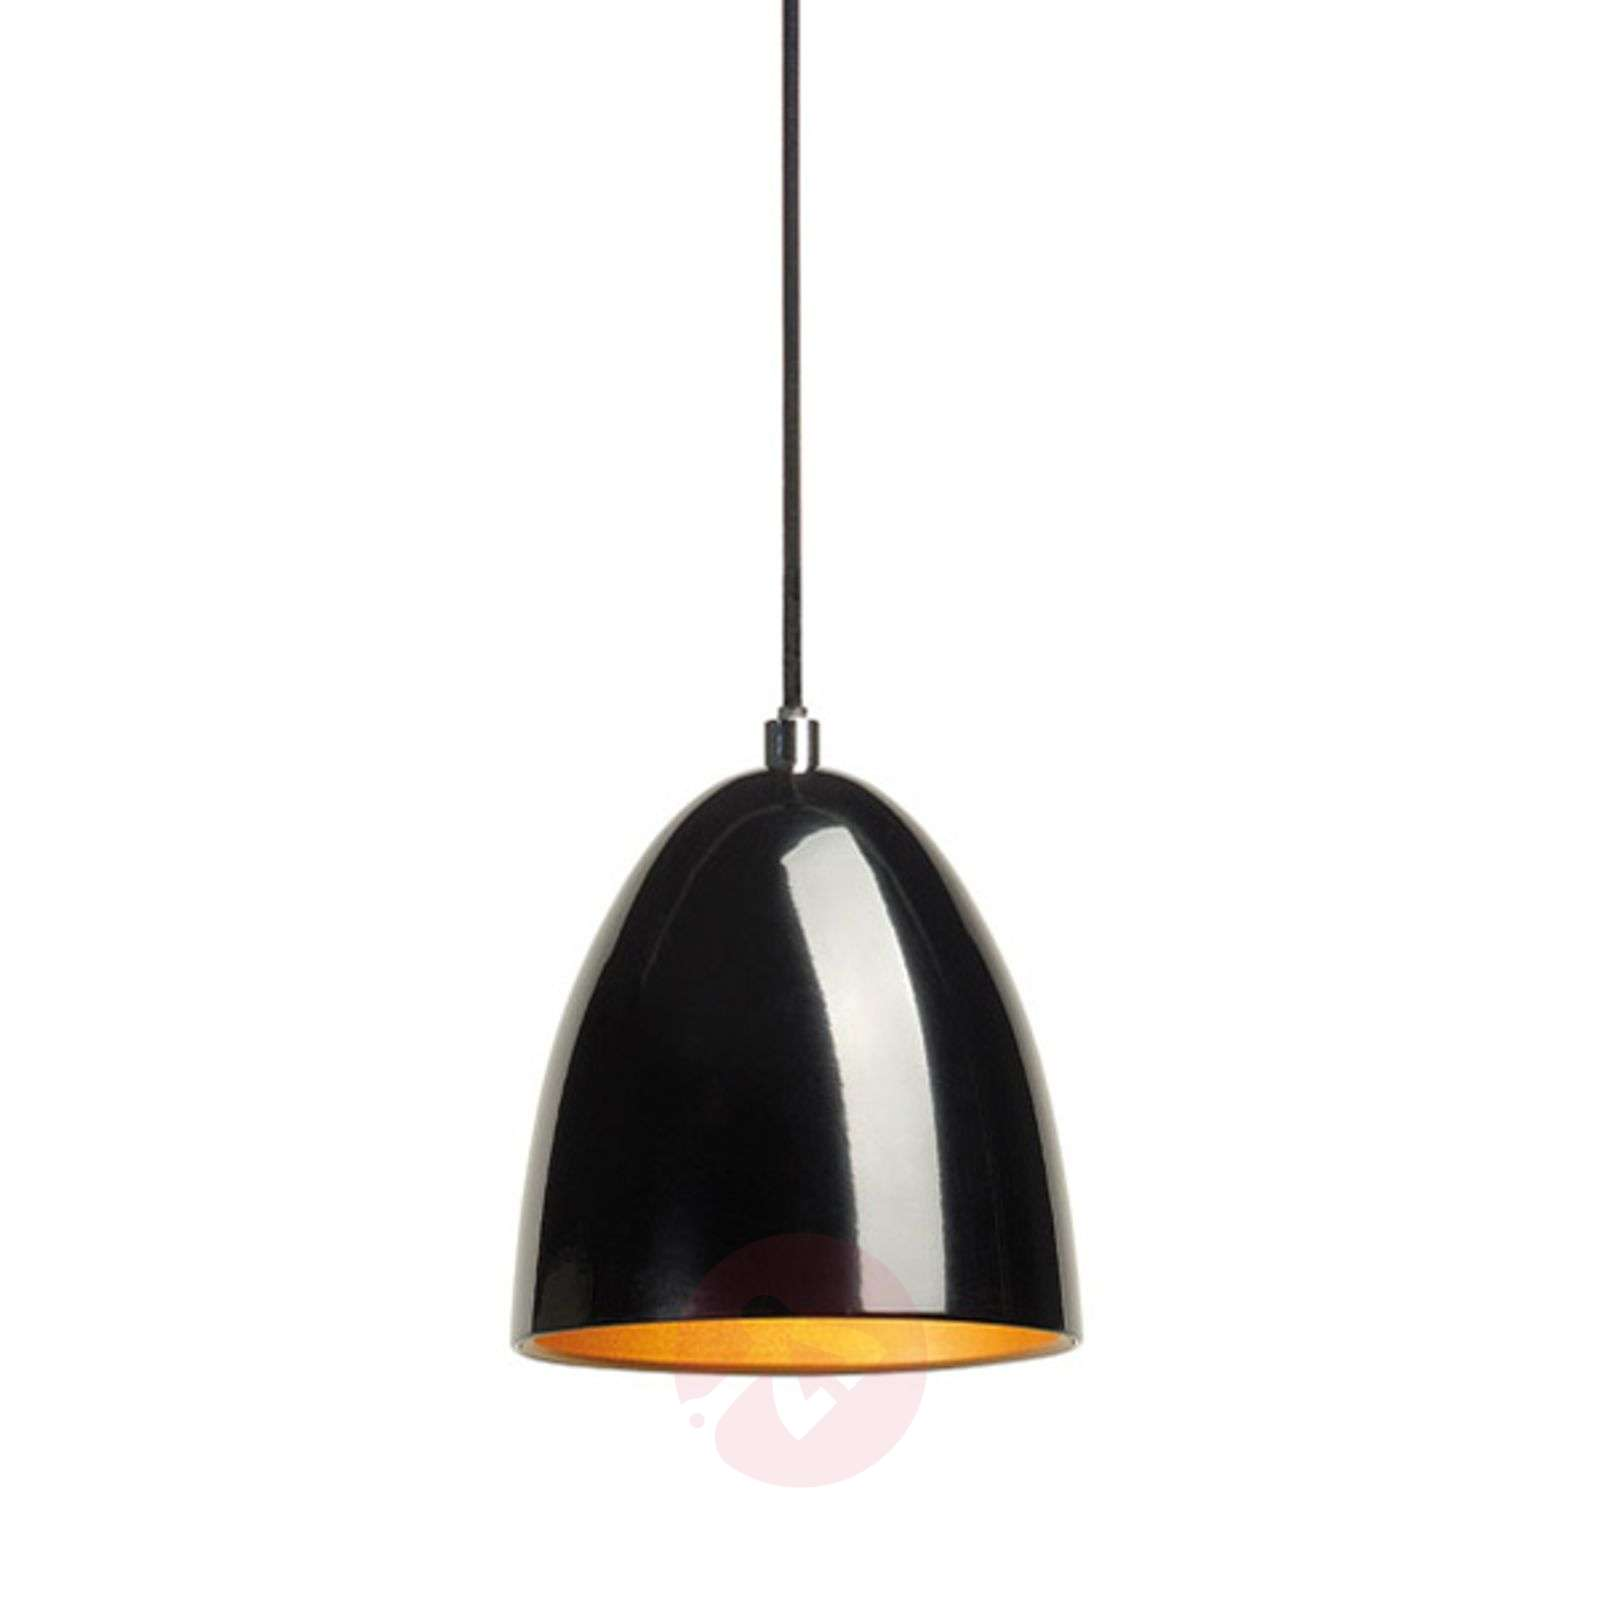 cone pendant fitting ceiling slv intalite light black para